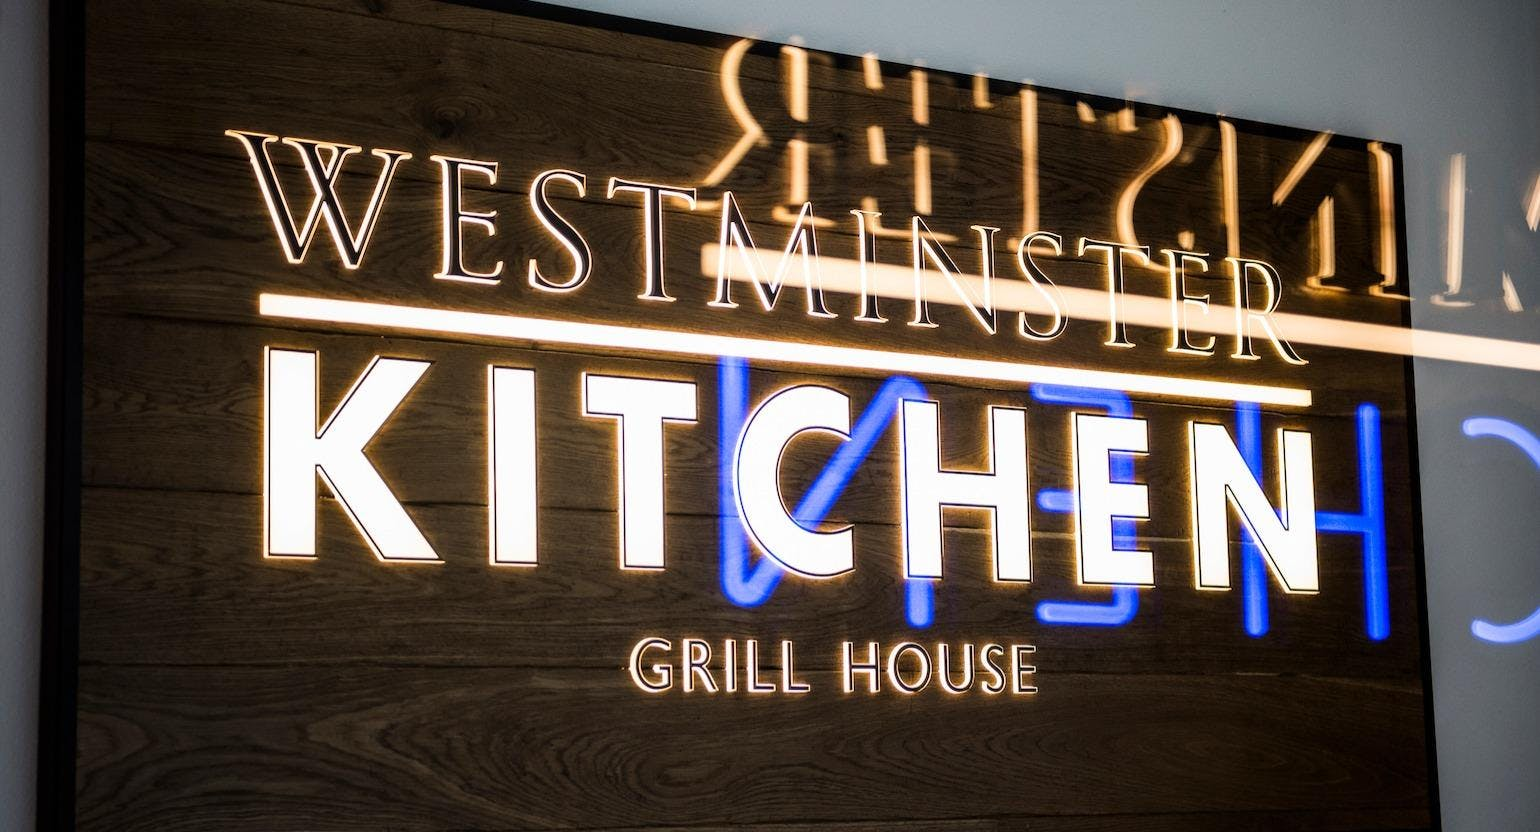 Westminster Kitchen Grill House London image 1